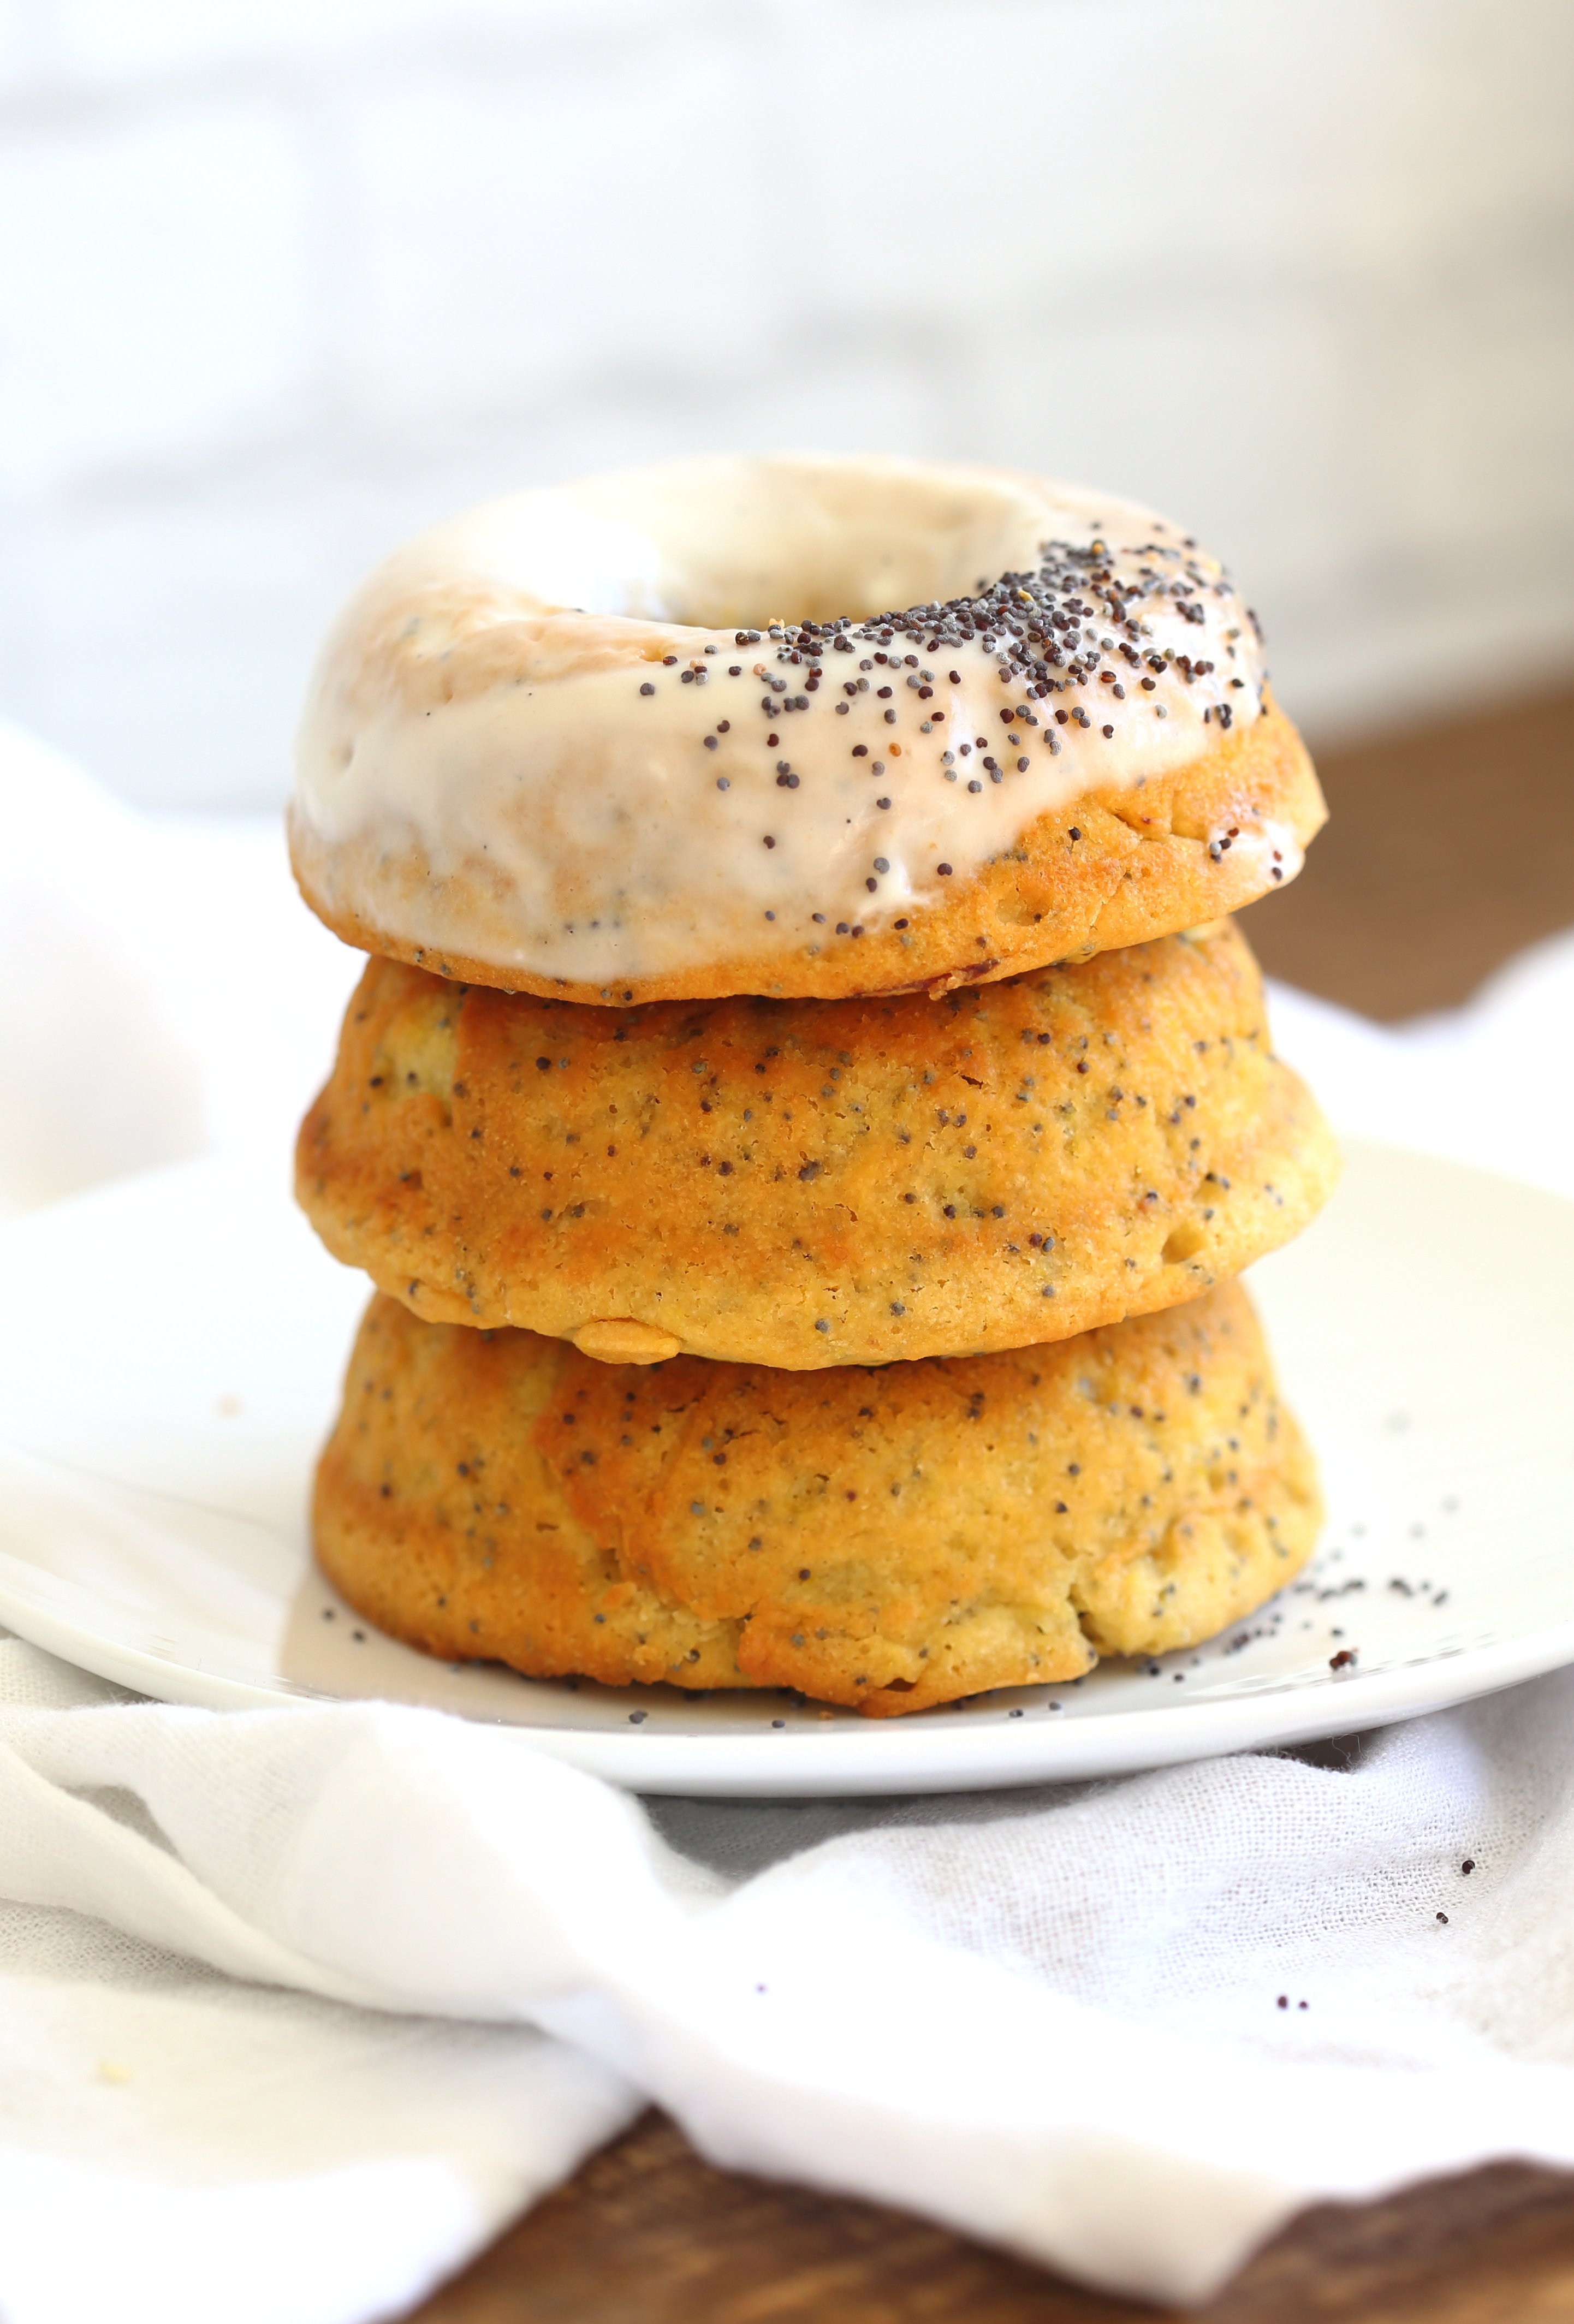 Lemon Poppy Seed Donuts - #Vegan Lemon Poppy Seed Donut Recipe. Simple to make and ready in less than 30 minutes. Top with cream cheese frosting. #VeganRicha #recipe #donuts #Nutfree #lemonpoppyseedonut